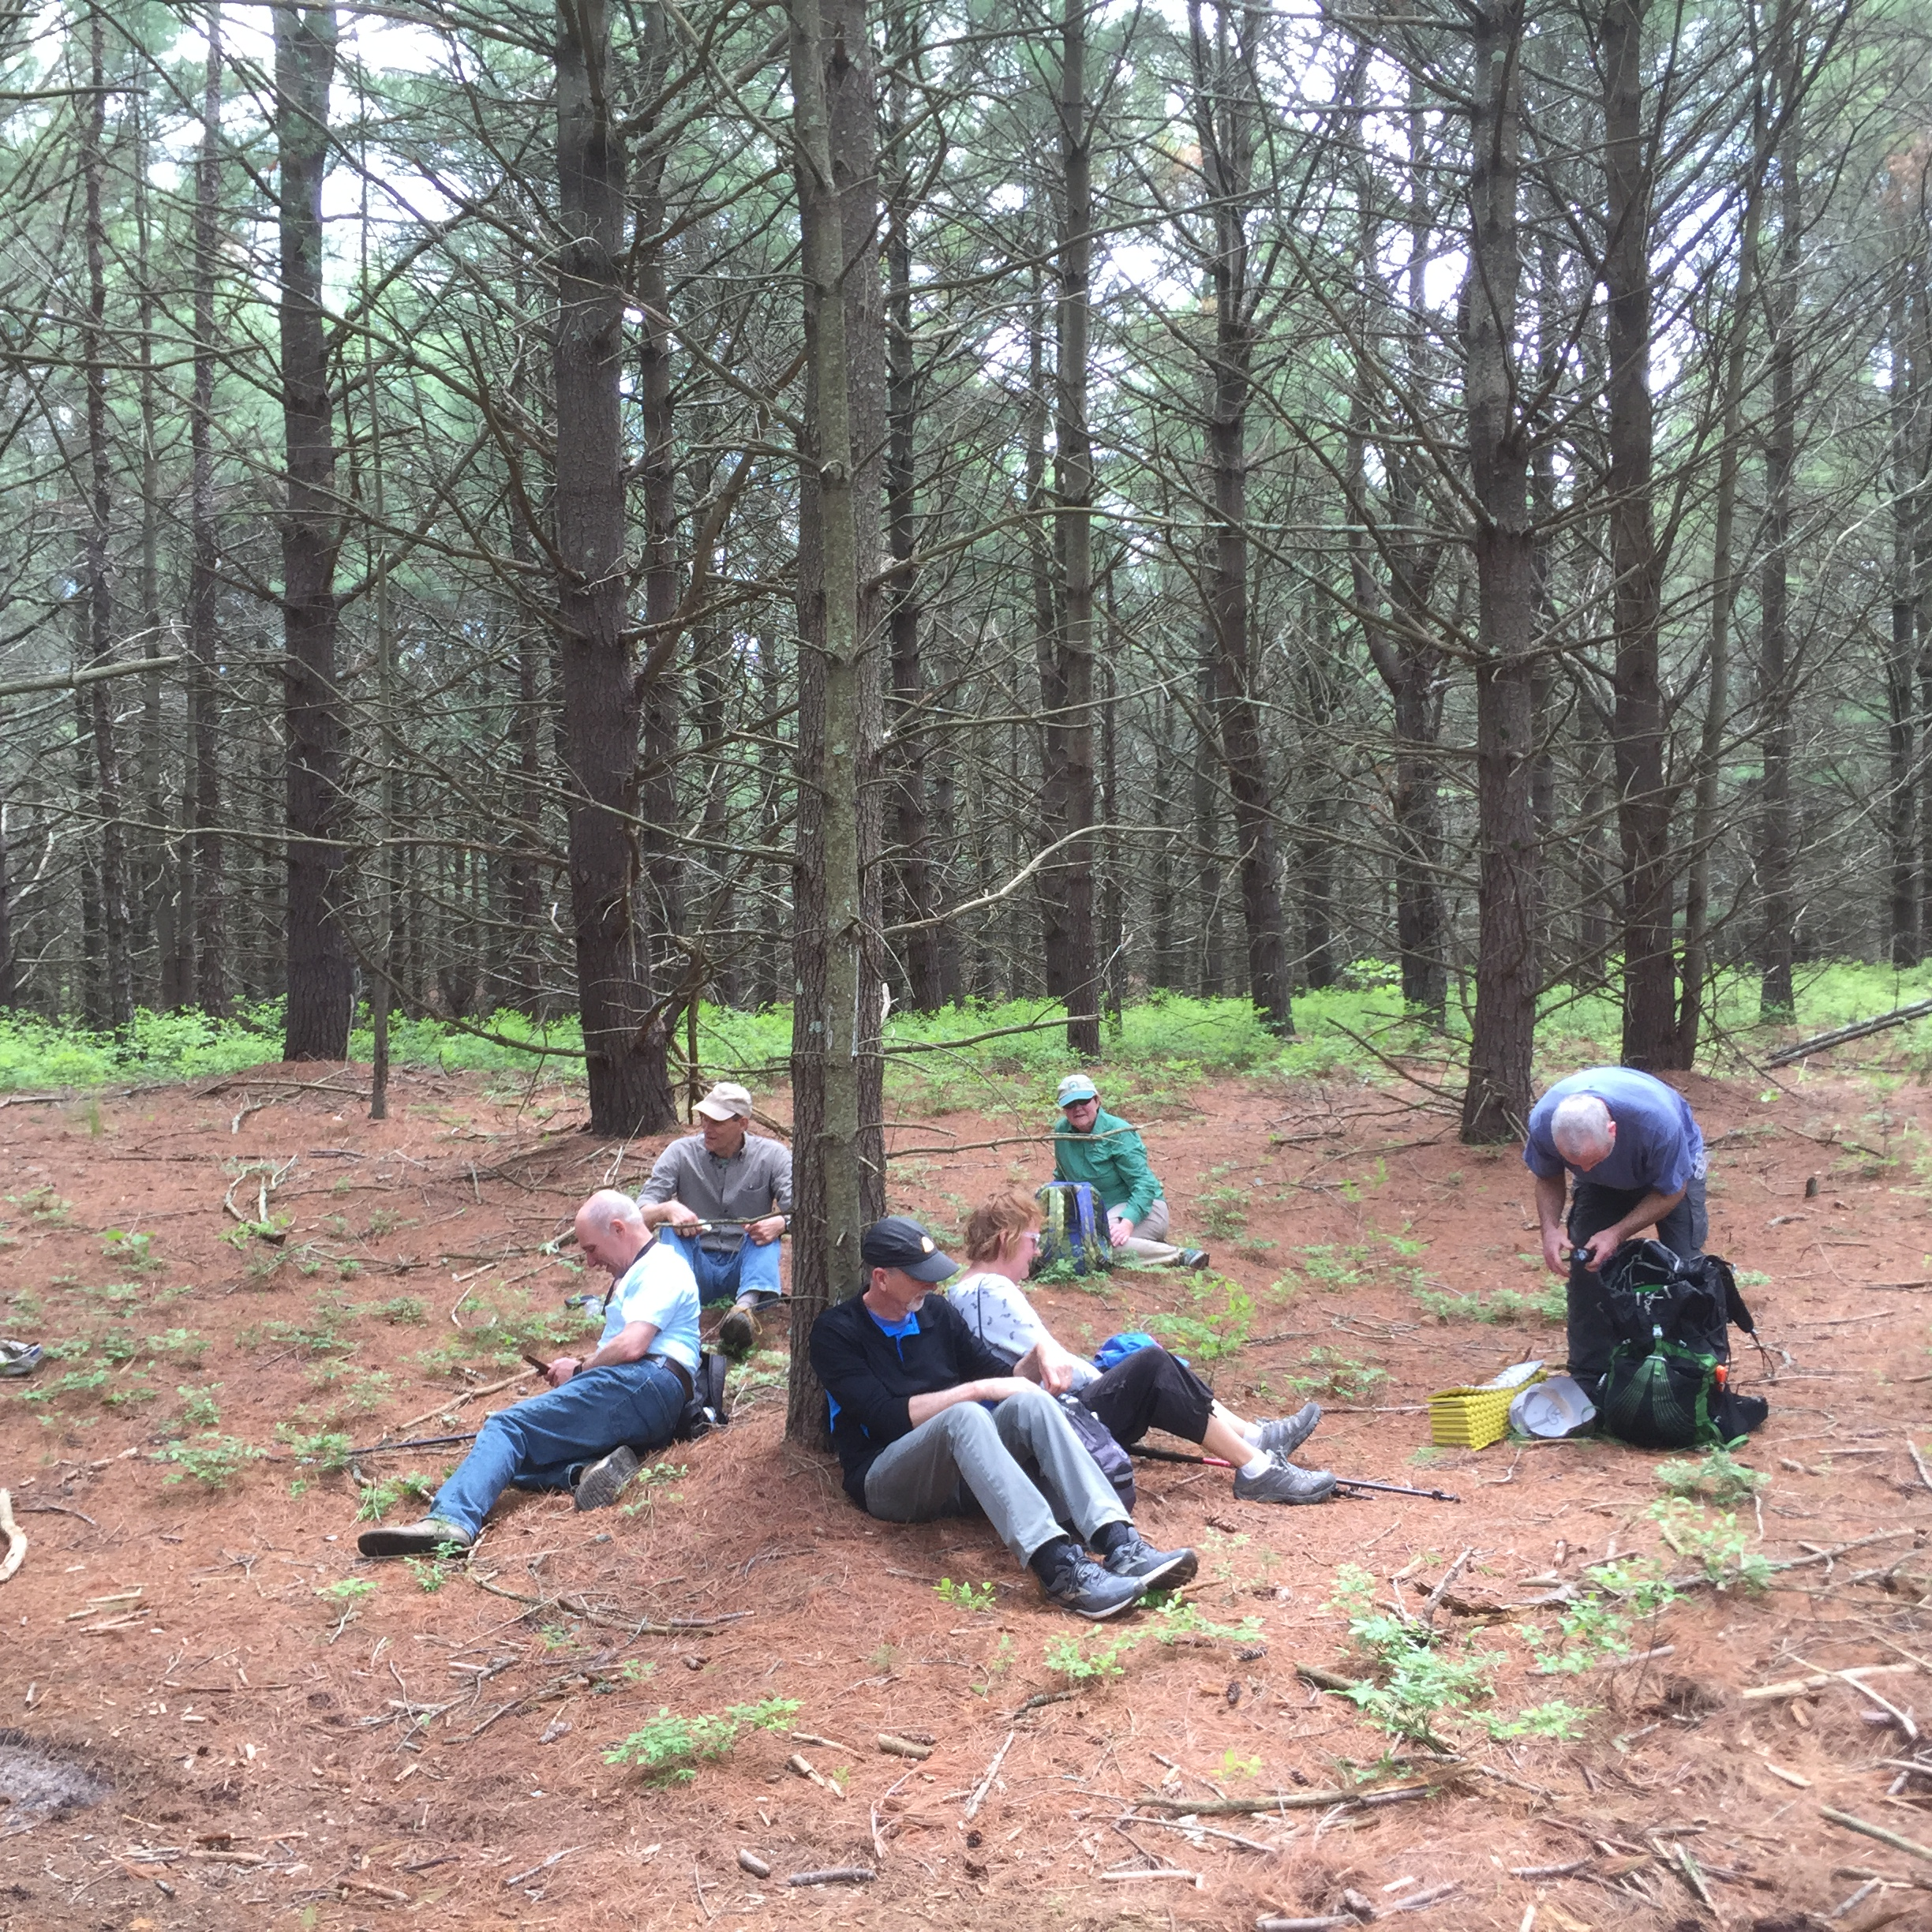 A leisurely lunch in the shadows of the cathedral pines (Part I)